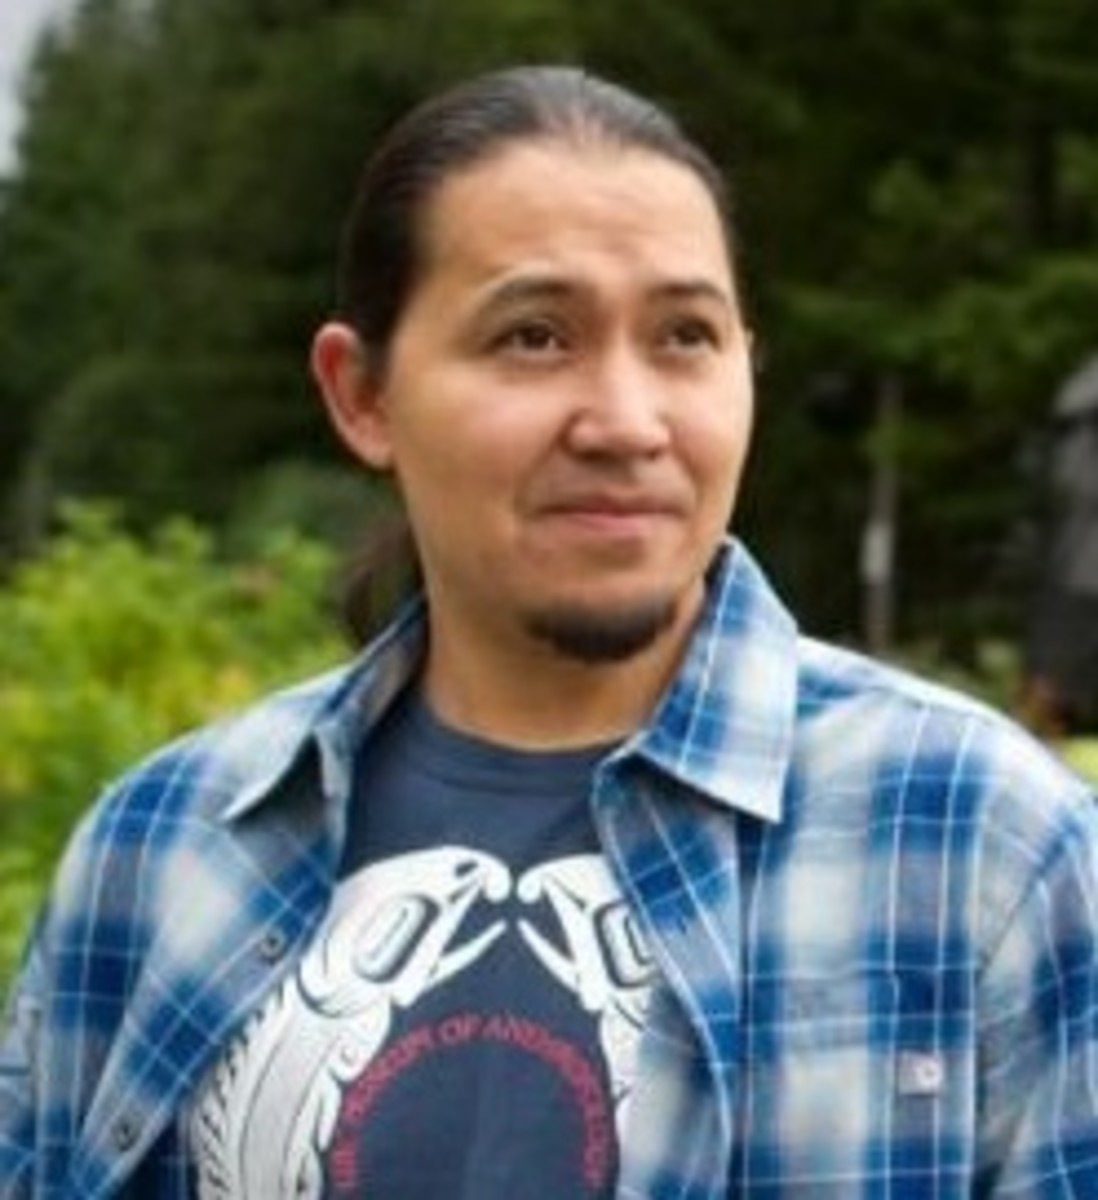 X̱'unei Lance Twitchell is a citizen of the Tlingit and Haida Indian Tribes and associate professor of Alaska Native languages at the University of Alaska Southeast.